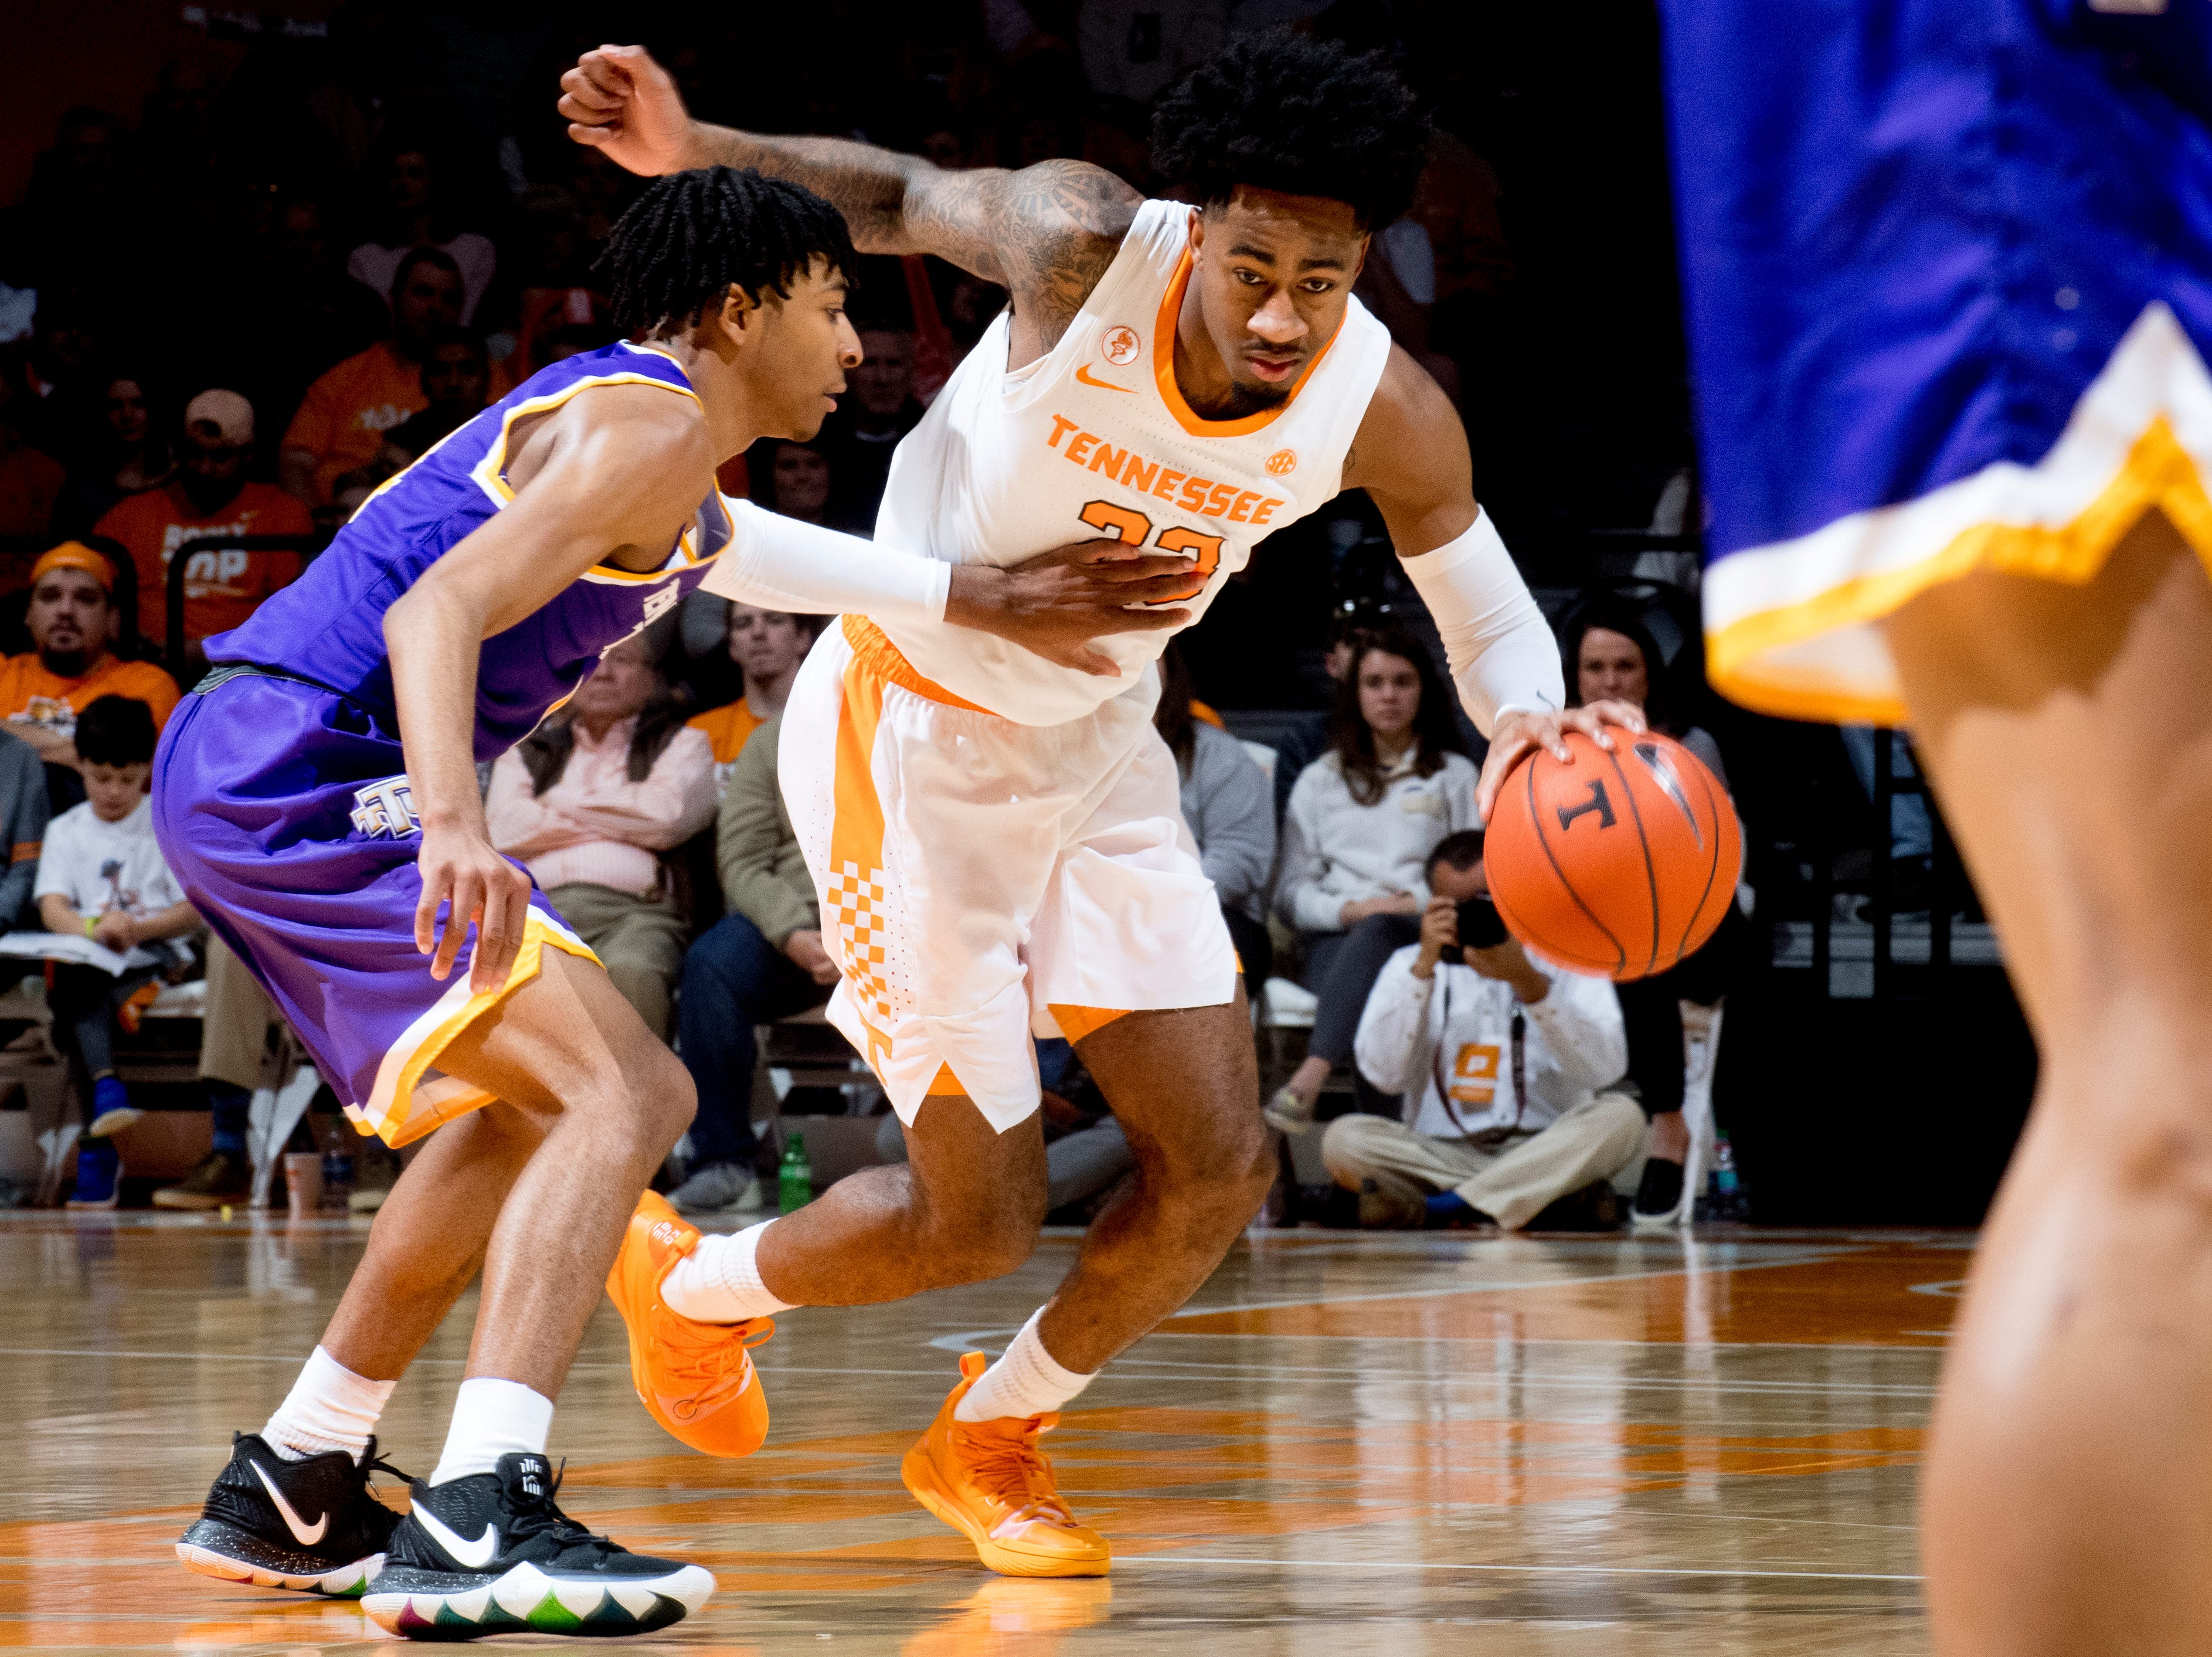 Tennessee guard Jordan Bowden (23) dribbles past Tennessee Tech guard Jr. Clay (4) during a game between Tennessee and Tennessee Tech at Thompson-Boling Arena in Knoxville, Tennessee on Saturday, December 29, 2018.